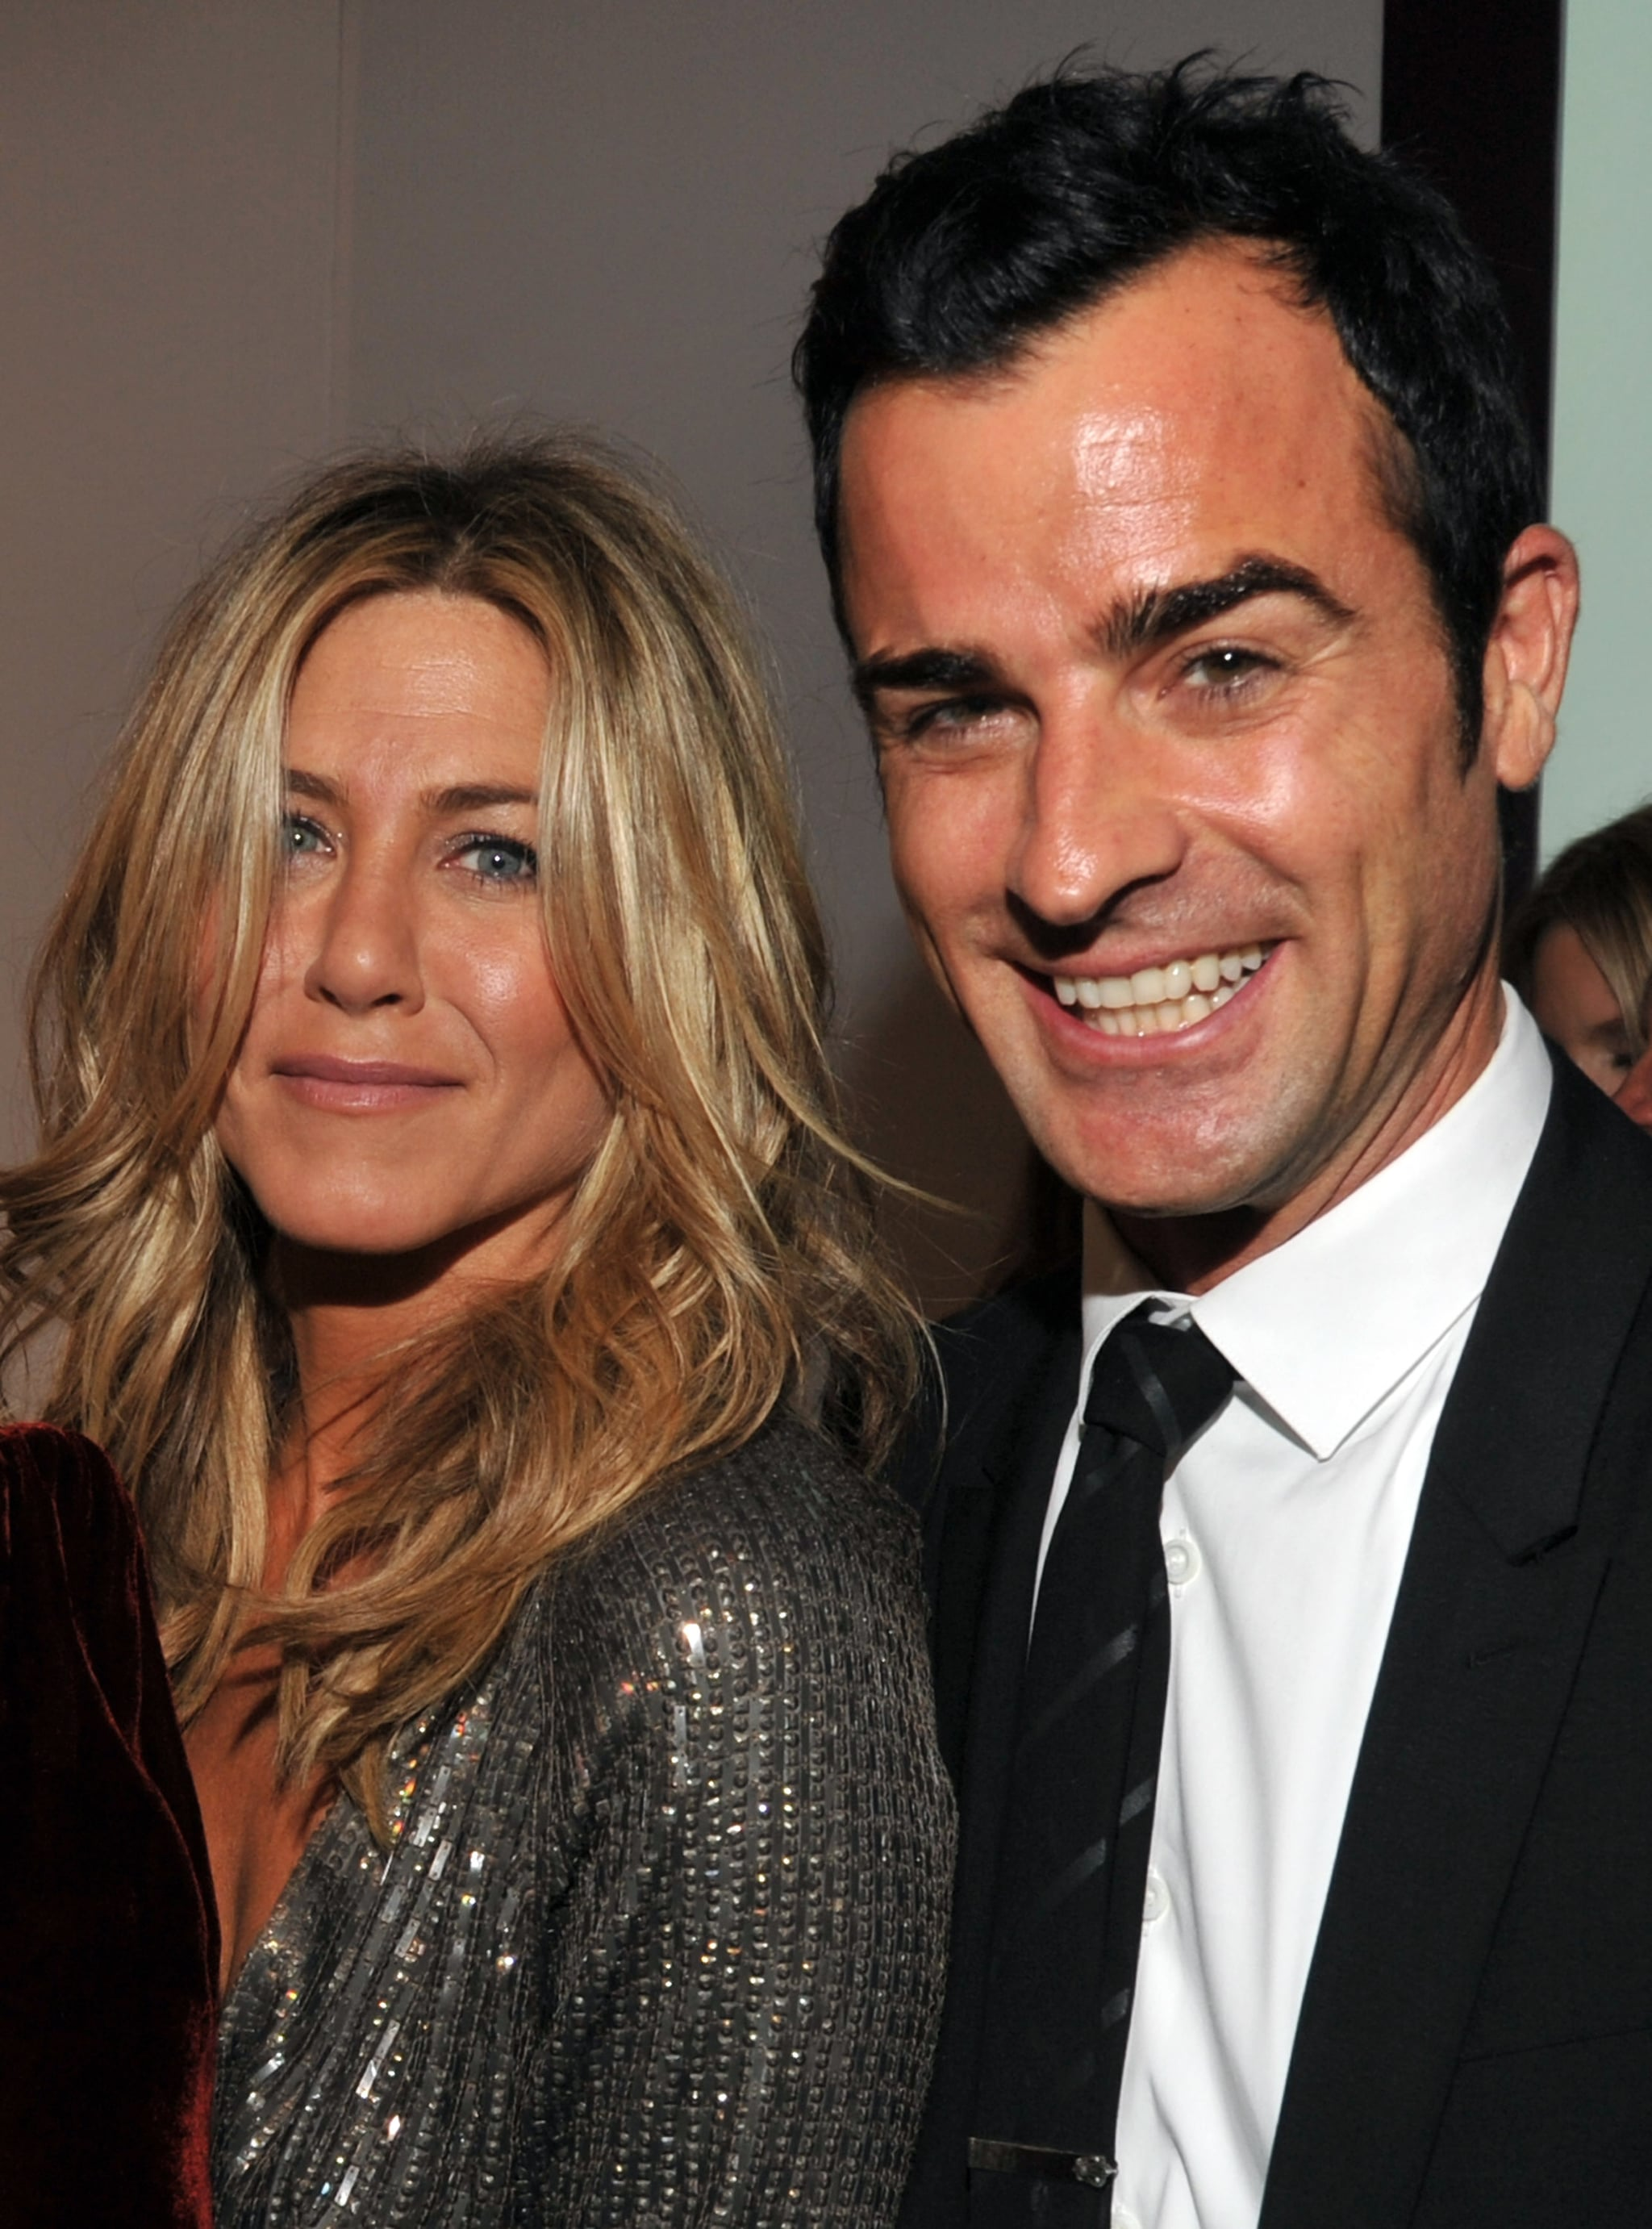 Jennifer Aniston and Justin Theroux attended an event for Elle together in LA.